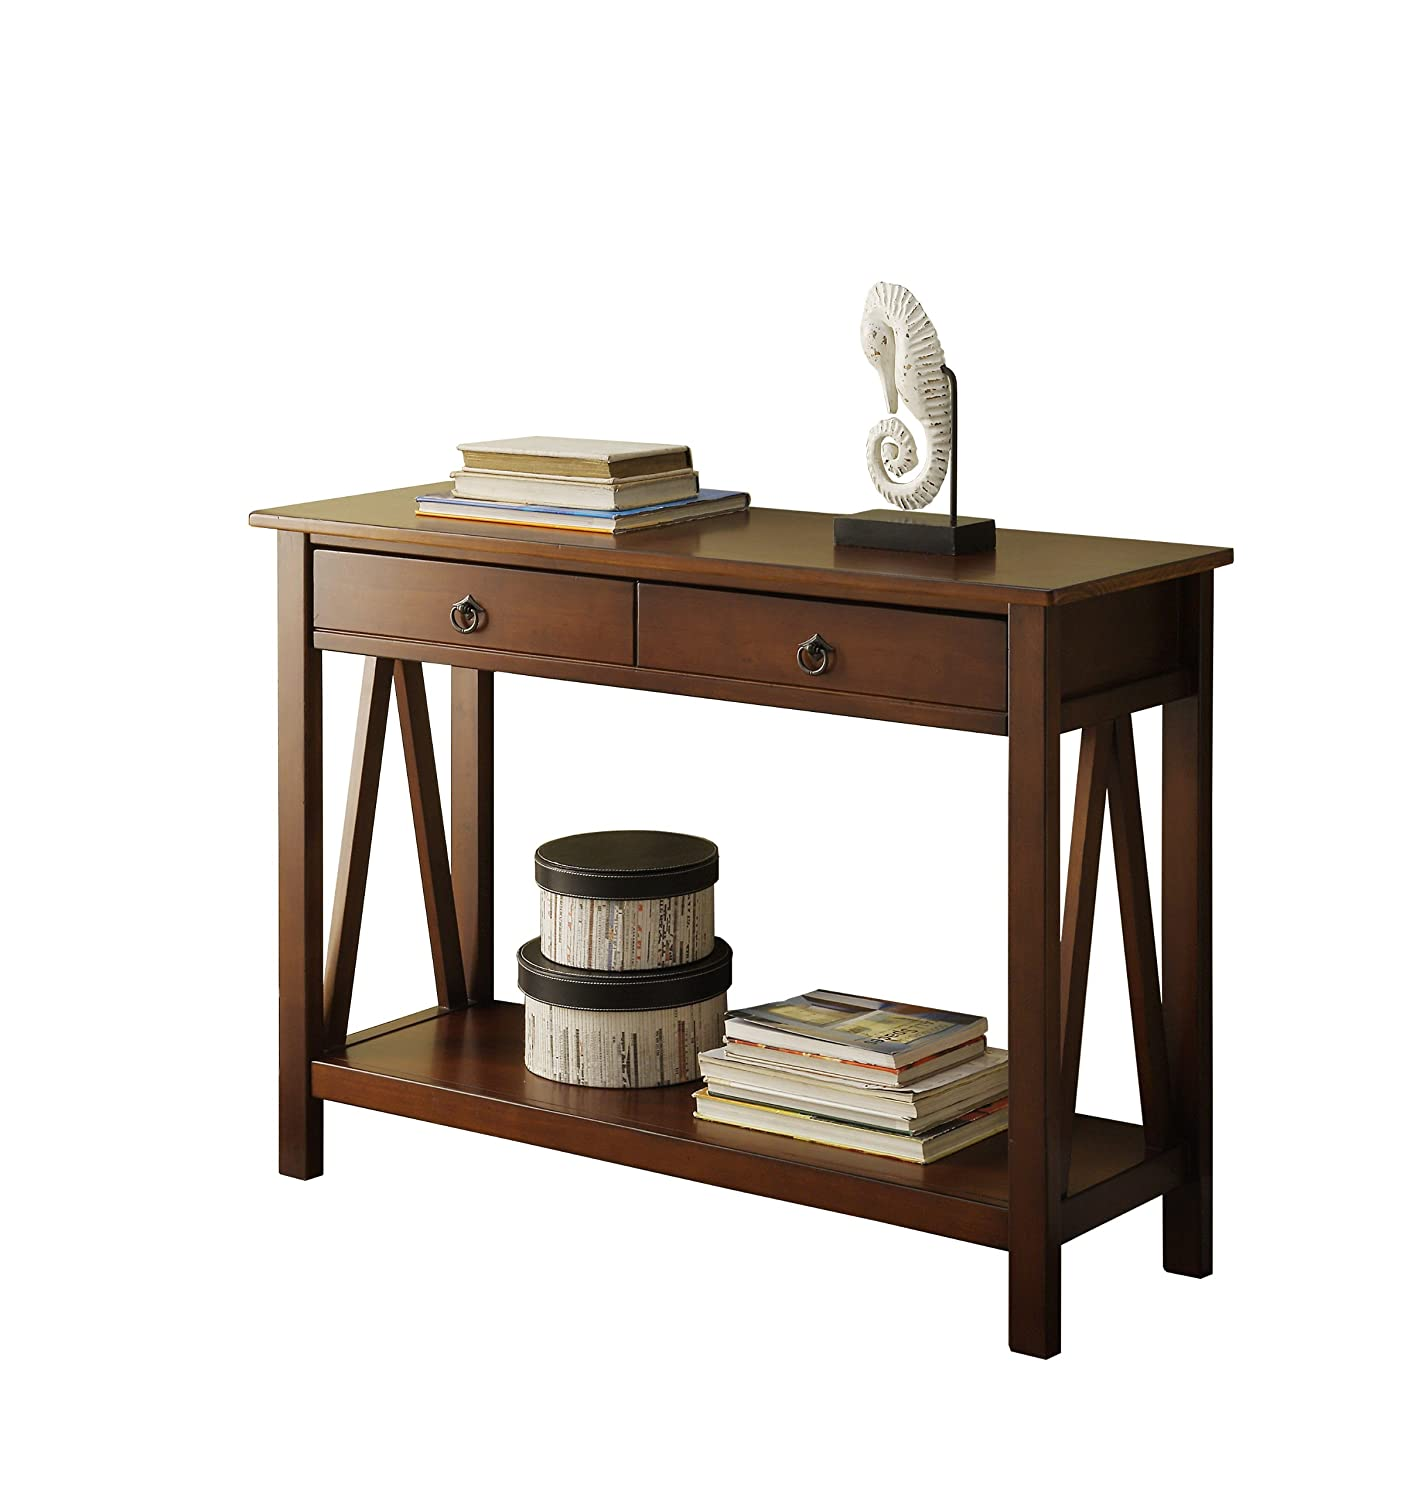 Amazon.com: Linon Home Decor Titian Antique Console Table: Kitchen U0026 Dining